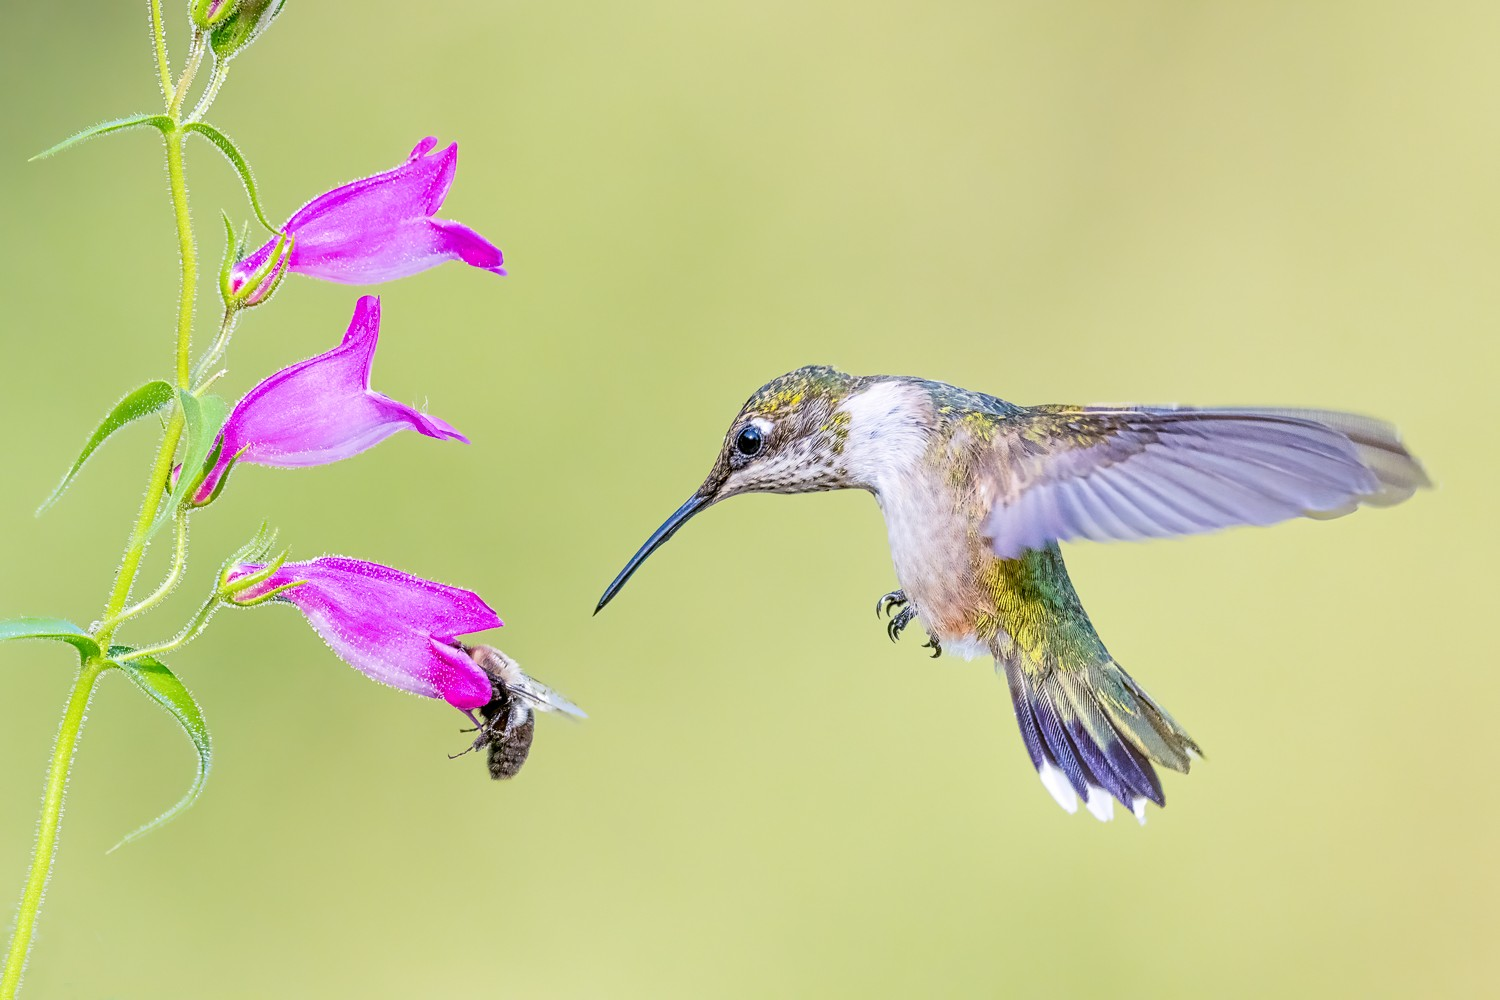 Hummingbird and Bee